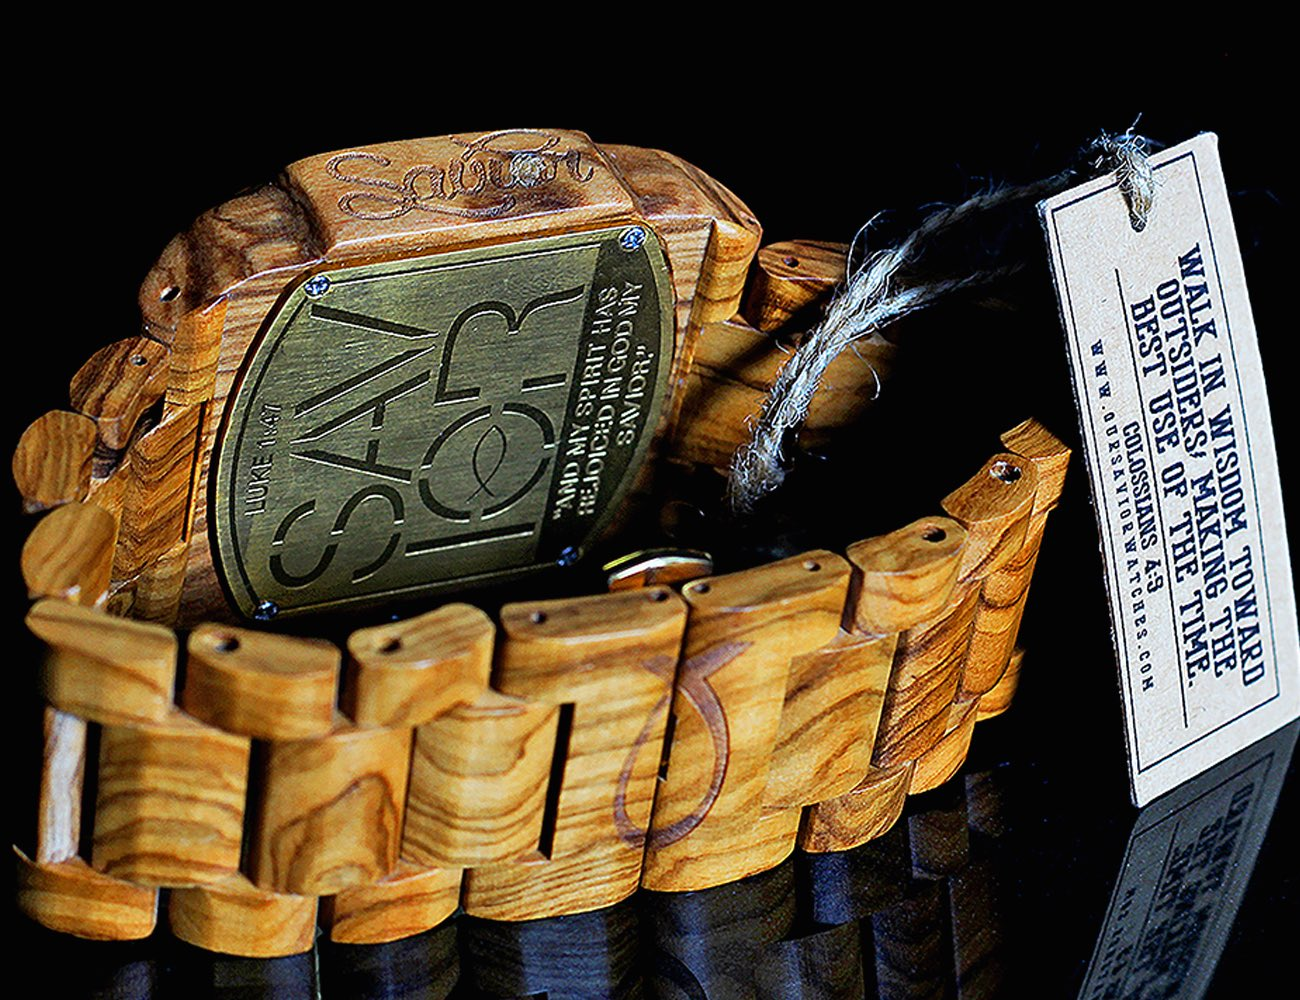 Savior Watches – Premium Biblical Wood Hand-Picked From Israel & Designed in USA